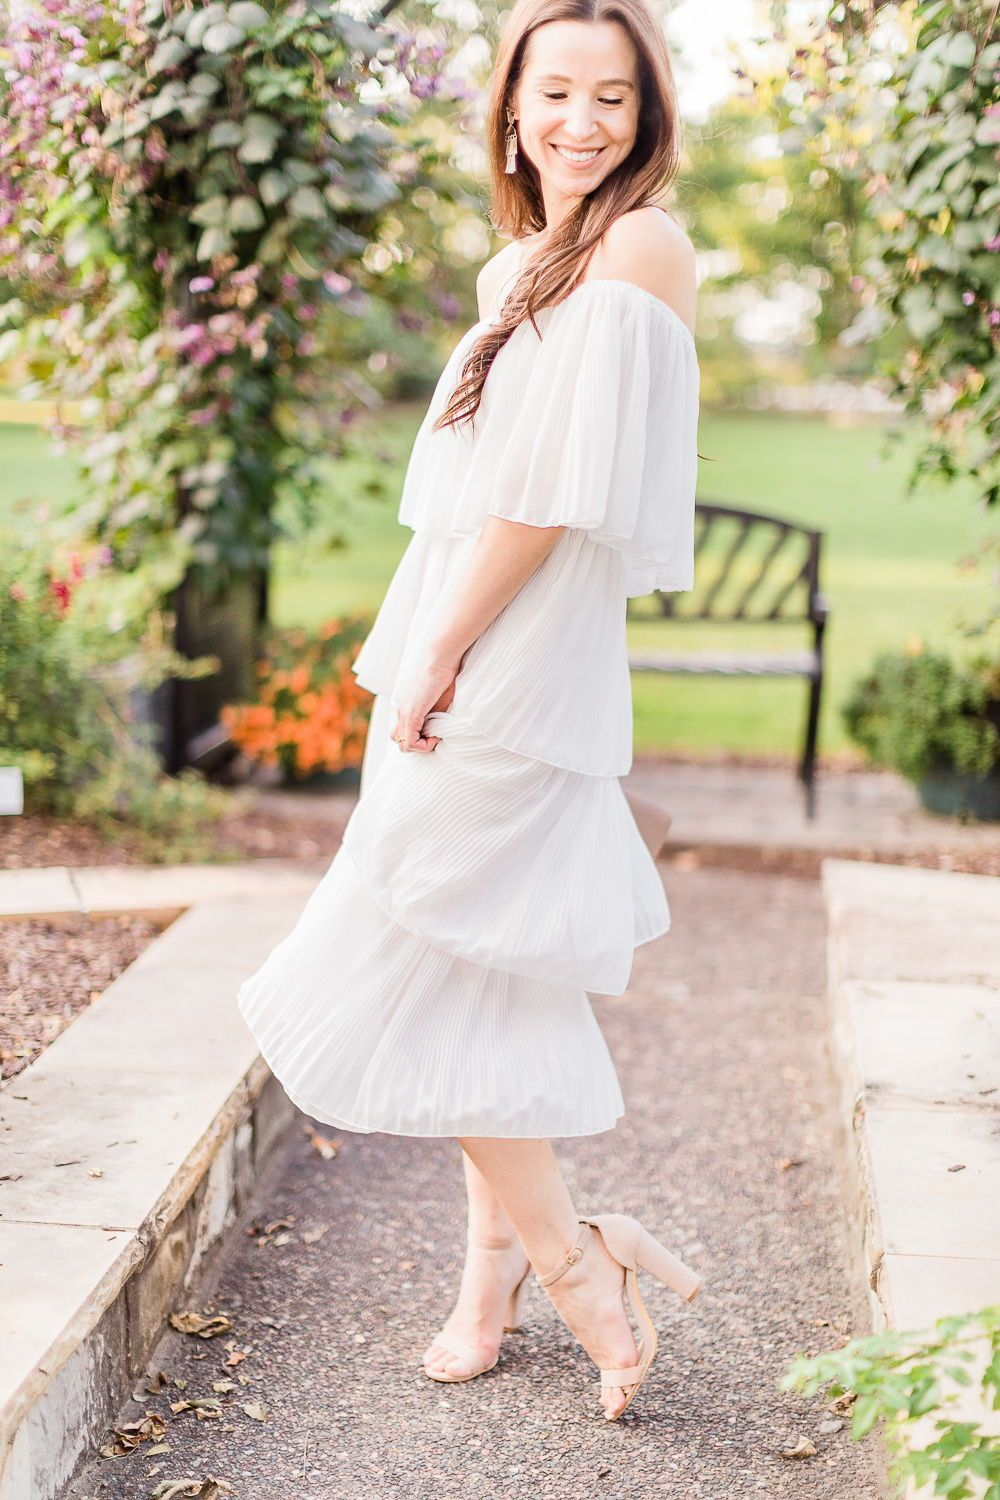 Budget-Friendly Bridal Shower Dress for the Bride-to-Be #dressesforengagementparty How gorgeous is this white off the shoulder ruffle dress from Amazon Fashion?! Not only is this LWD perfect for Bride-to-Be's (it'd make a perfect engagement party dress, bridal shower dress, and/or rehearsal dinner dress!), it comes in 8 colors and would make a beautiful fall wedding guest outfit, too. Click through for outfit details from popular affordable fashion blogger Stephanie Ziajka on Diary of a Debutant #dressesforengagementparty